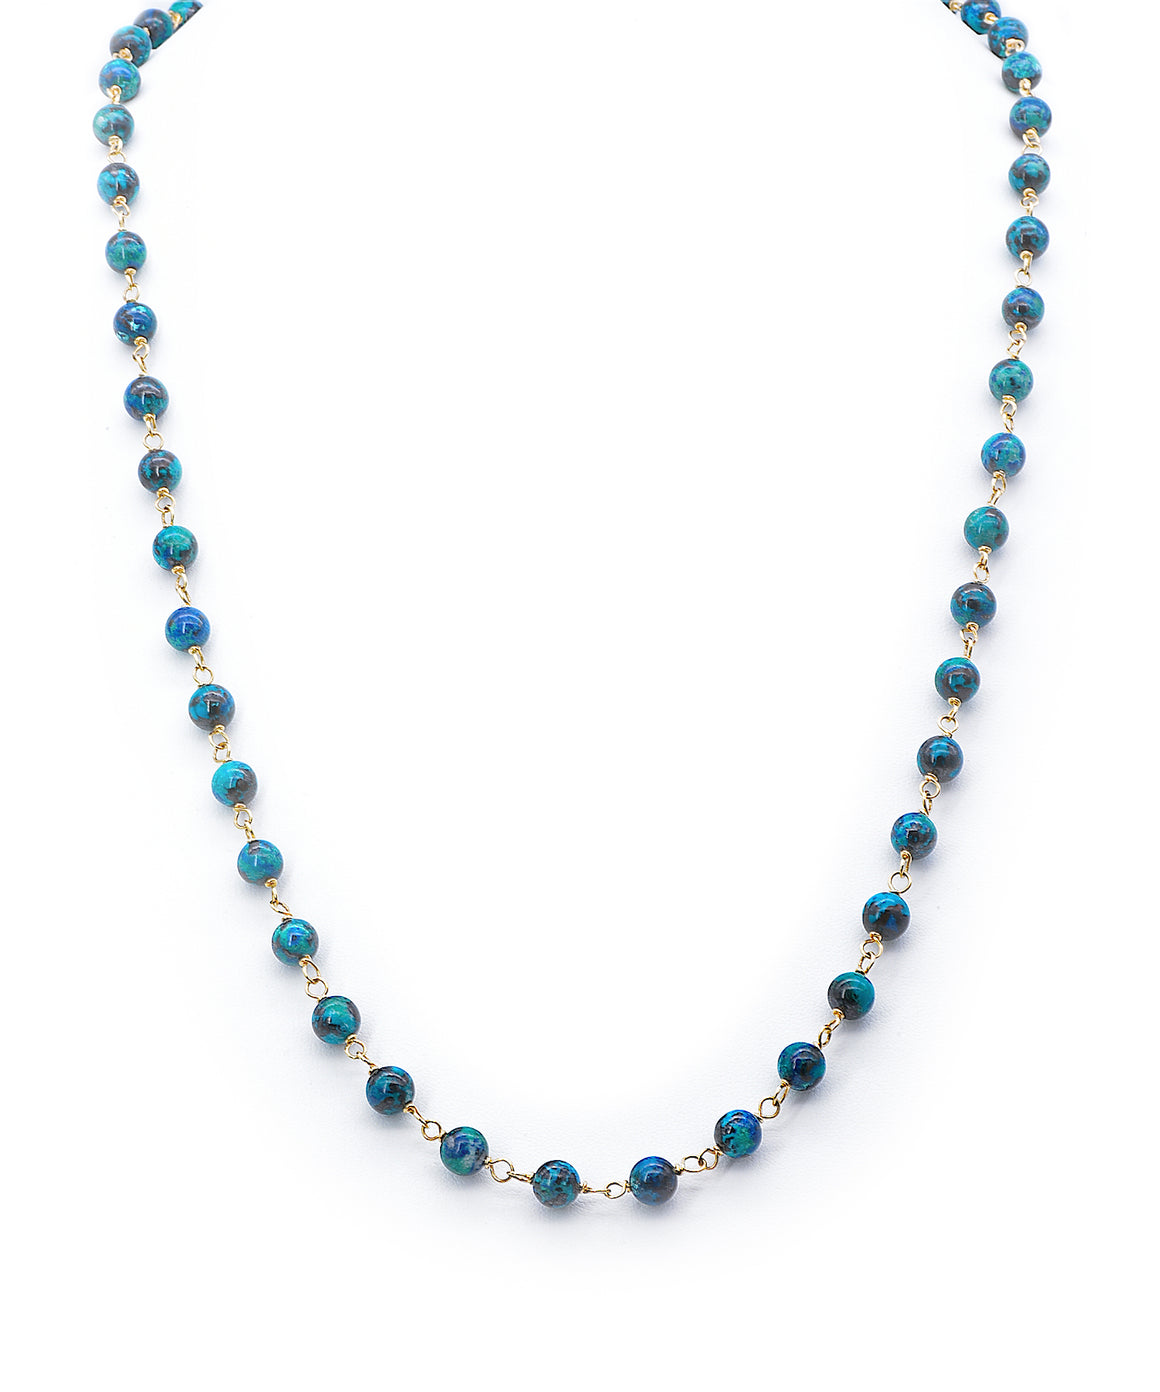 Chrysocolla bead necklace